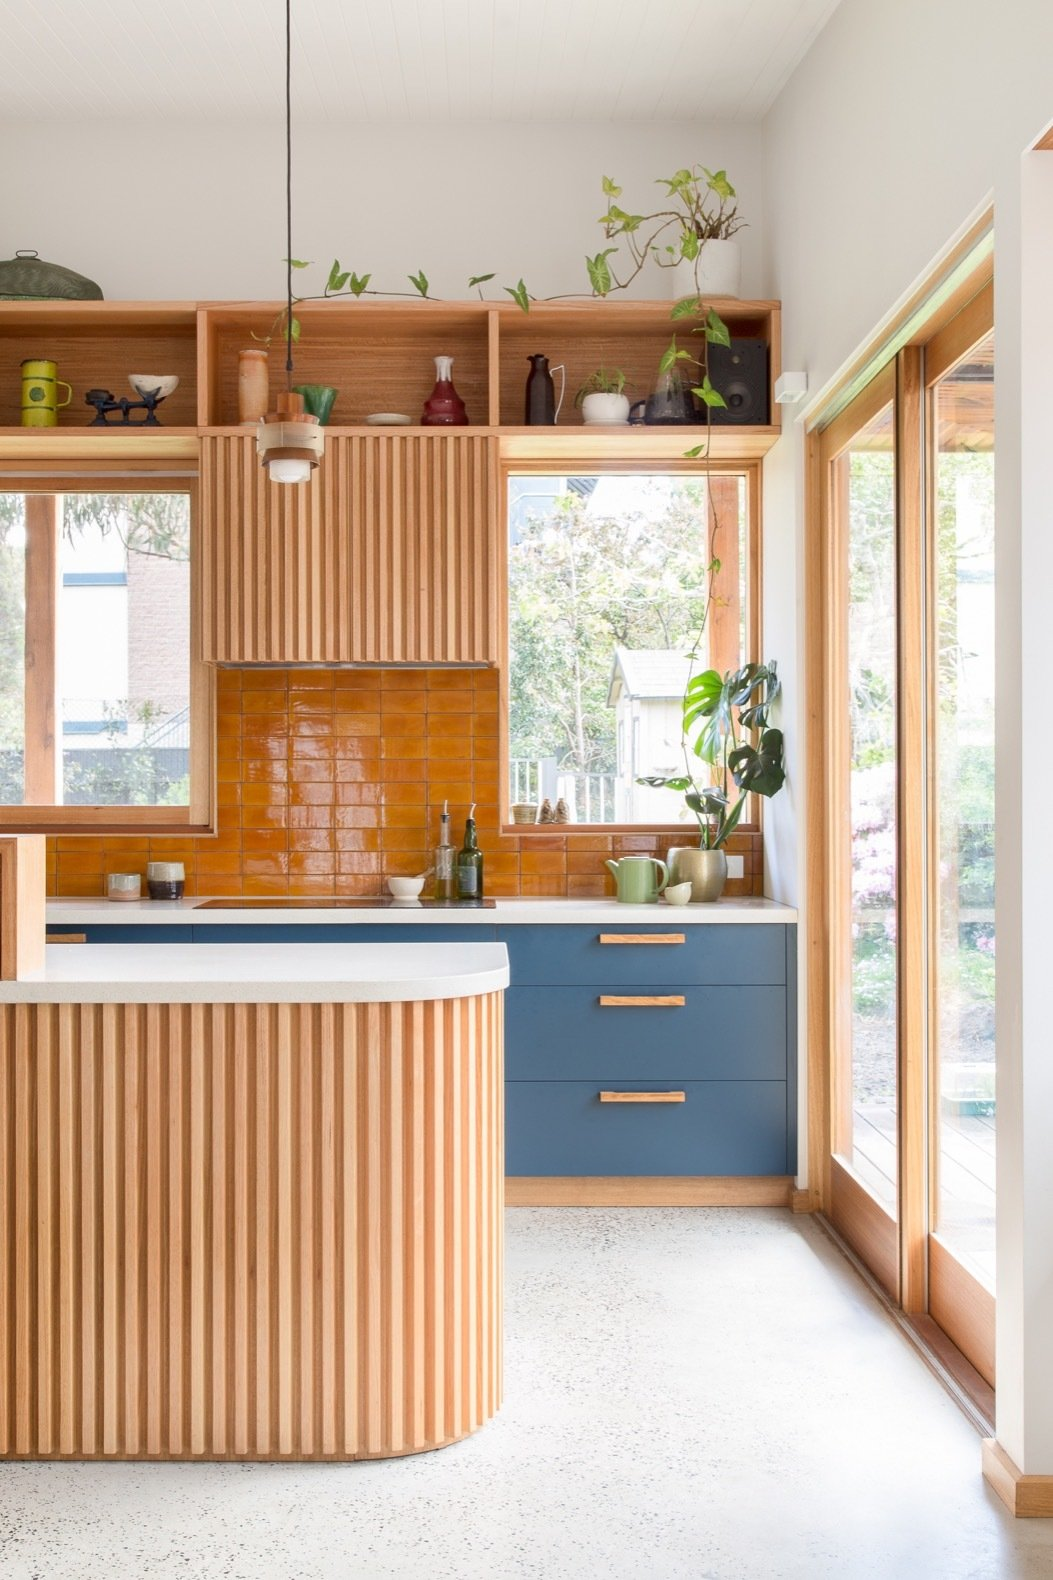 Kitchen, Ceramic Tile Backsplashe, Wood Cabinet, Engineered Quartz Counter, Concrete Floor, Pendant Lighting, Cooktops, and Colorful Cabinet Shielded by overhanging eaves, ample northern glazing lets in an abundance of natural light and views of the outdoors.   Photo 6 of 15 in A Cramped Bungalow Is Reborn as an Eco-Minded Abode For Two Gardeners